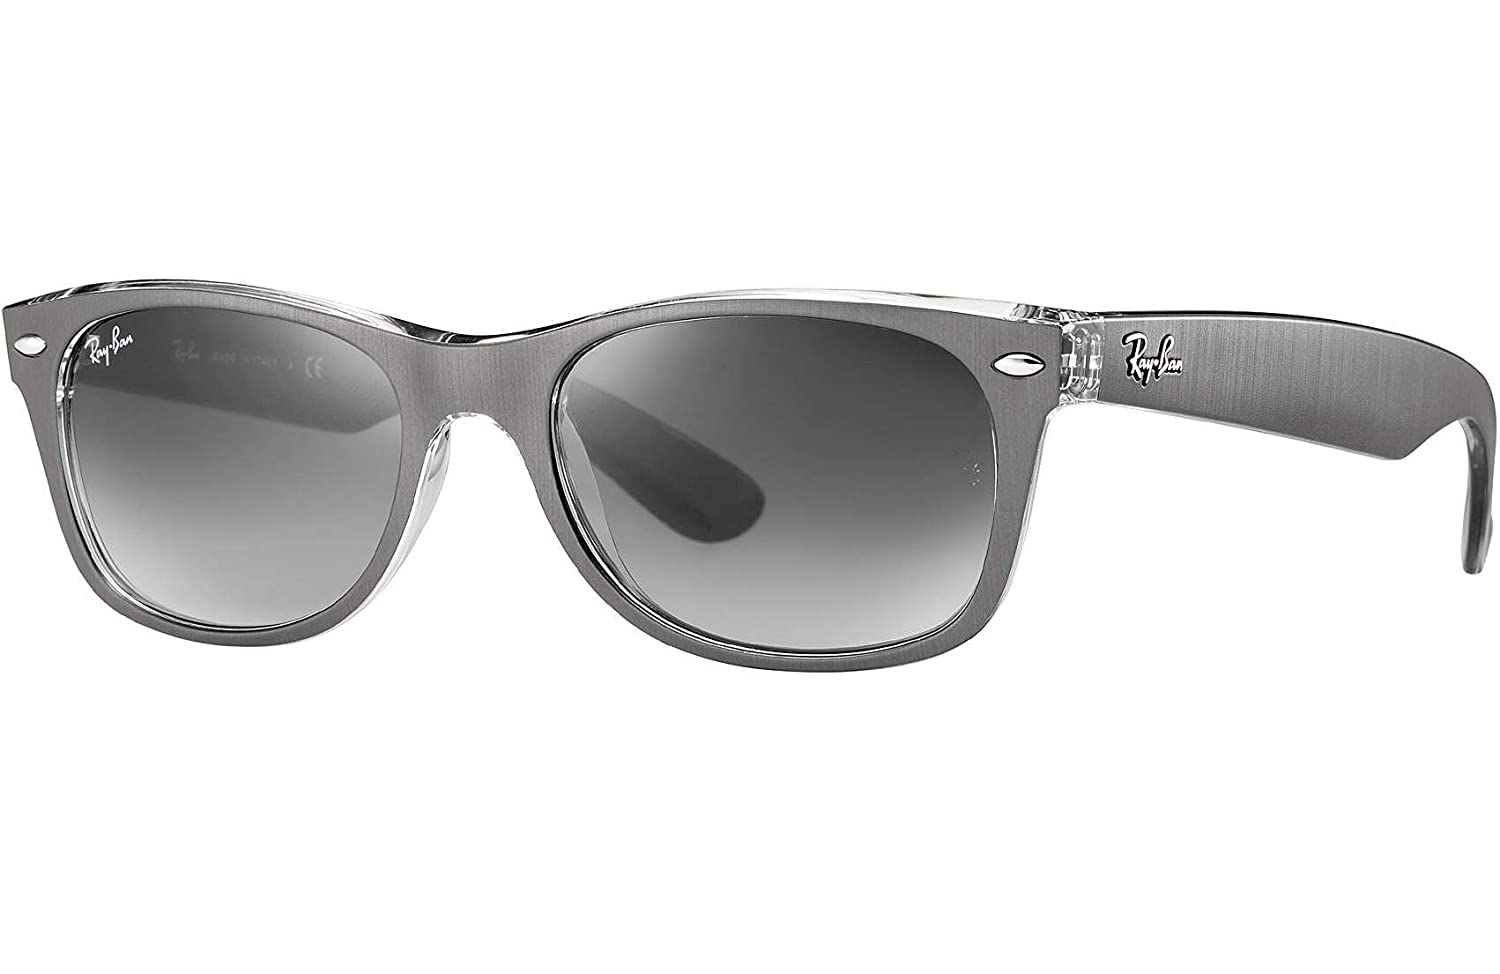 49f12109e5 Amazon.com  Ray Ban RB2132 614371 55 Gunmetal Clear New Wayfarer Sunglasses  Bundle-2 Items  Clothing